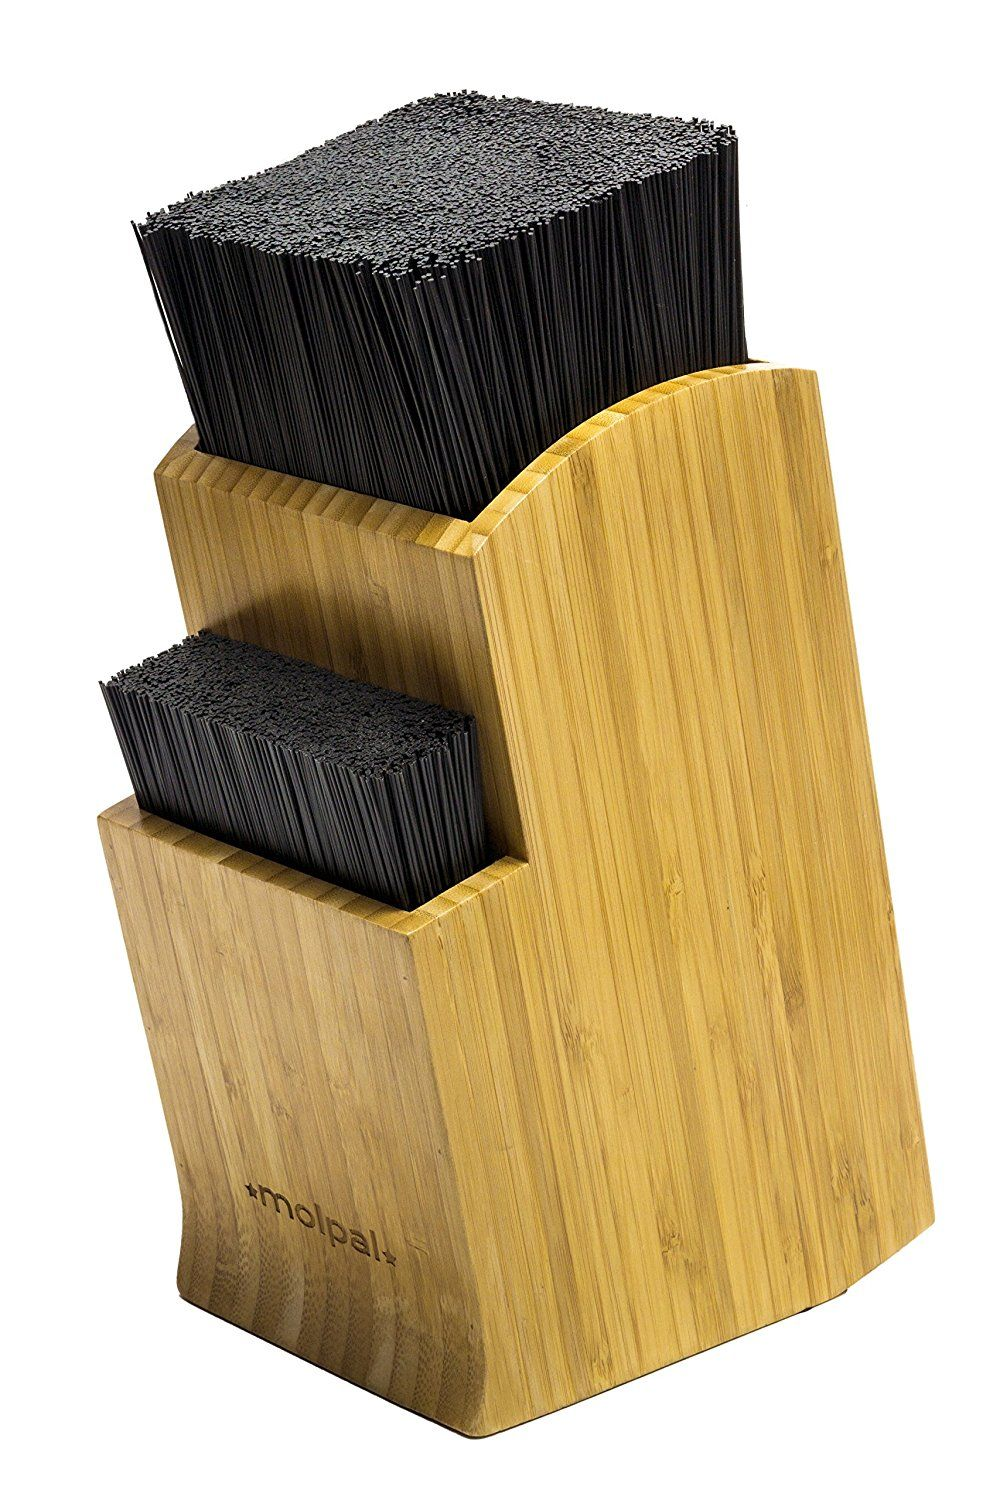 Knife Block Universal Holder Bamboo Kitchen Stand Without Knives By Molpal Check Out This Gr Bamboo Countertop Clean Dishwasher Countertop Organization